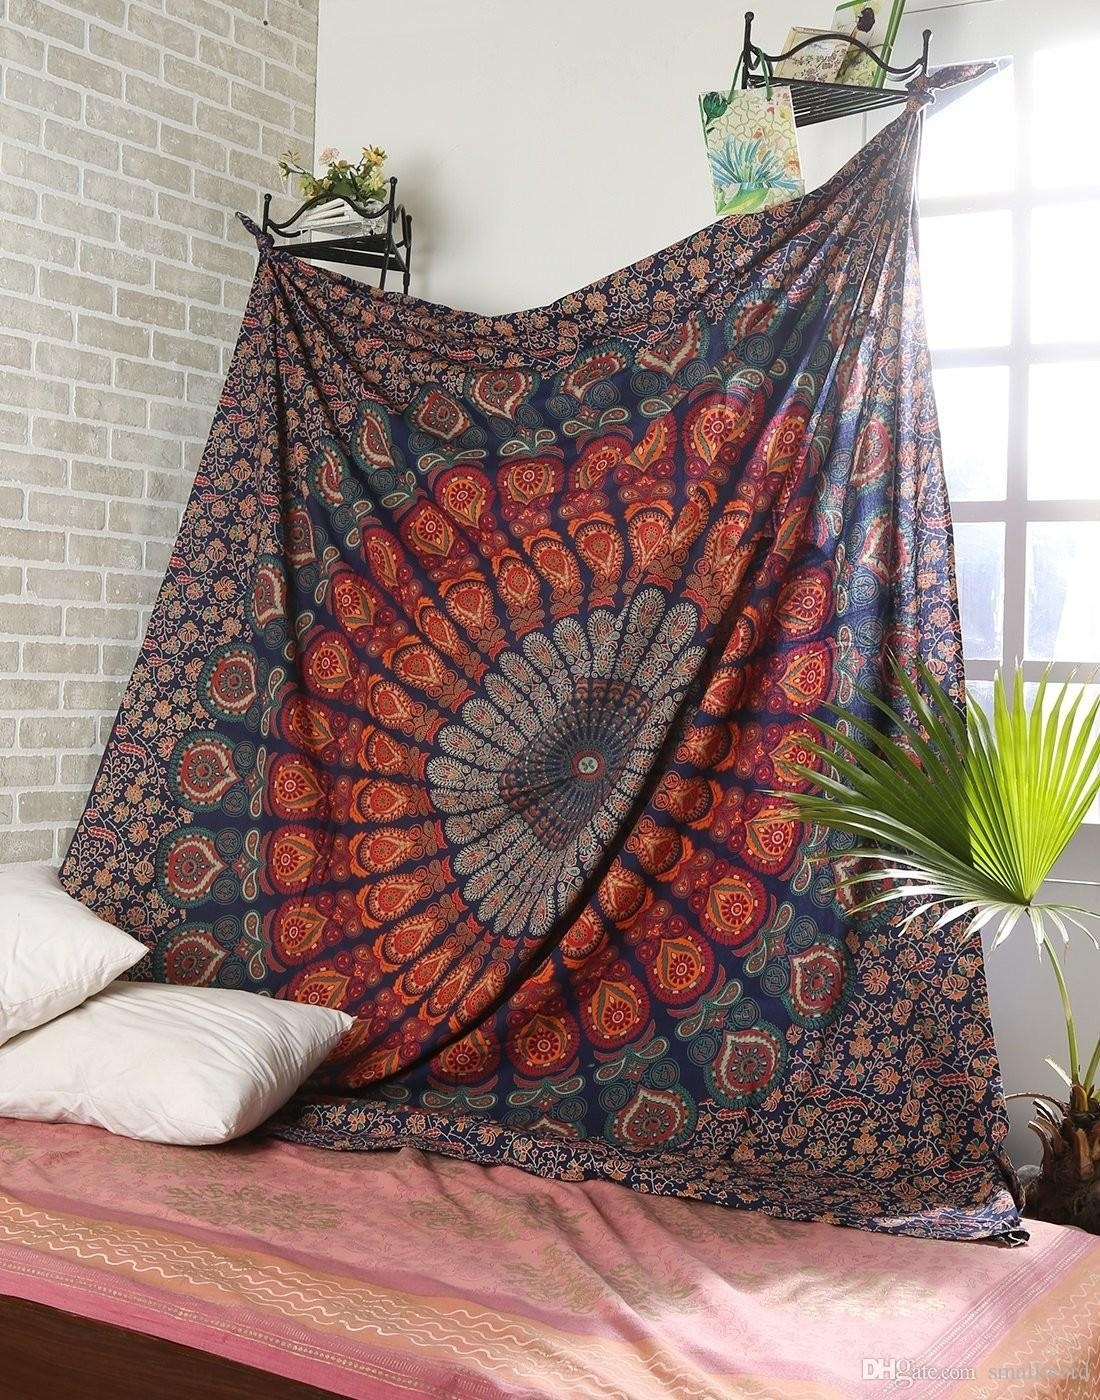 Mandala Tapestry Indian Wall Hanging Boho Home Decor Tapestry Intended For Most Current Indian Fabric Wall Art (Gallery 12 of 15)